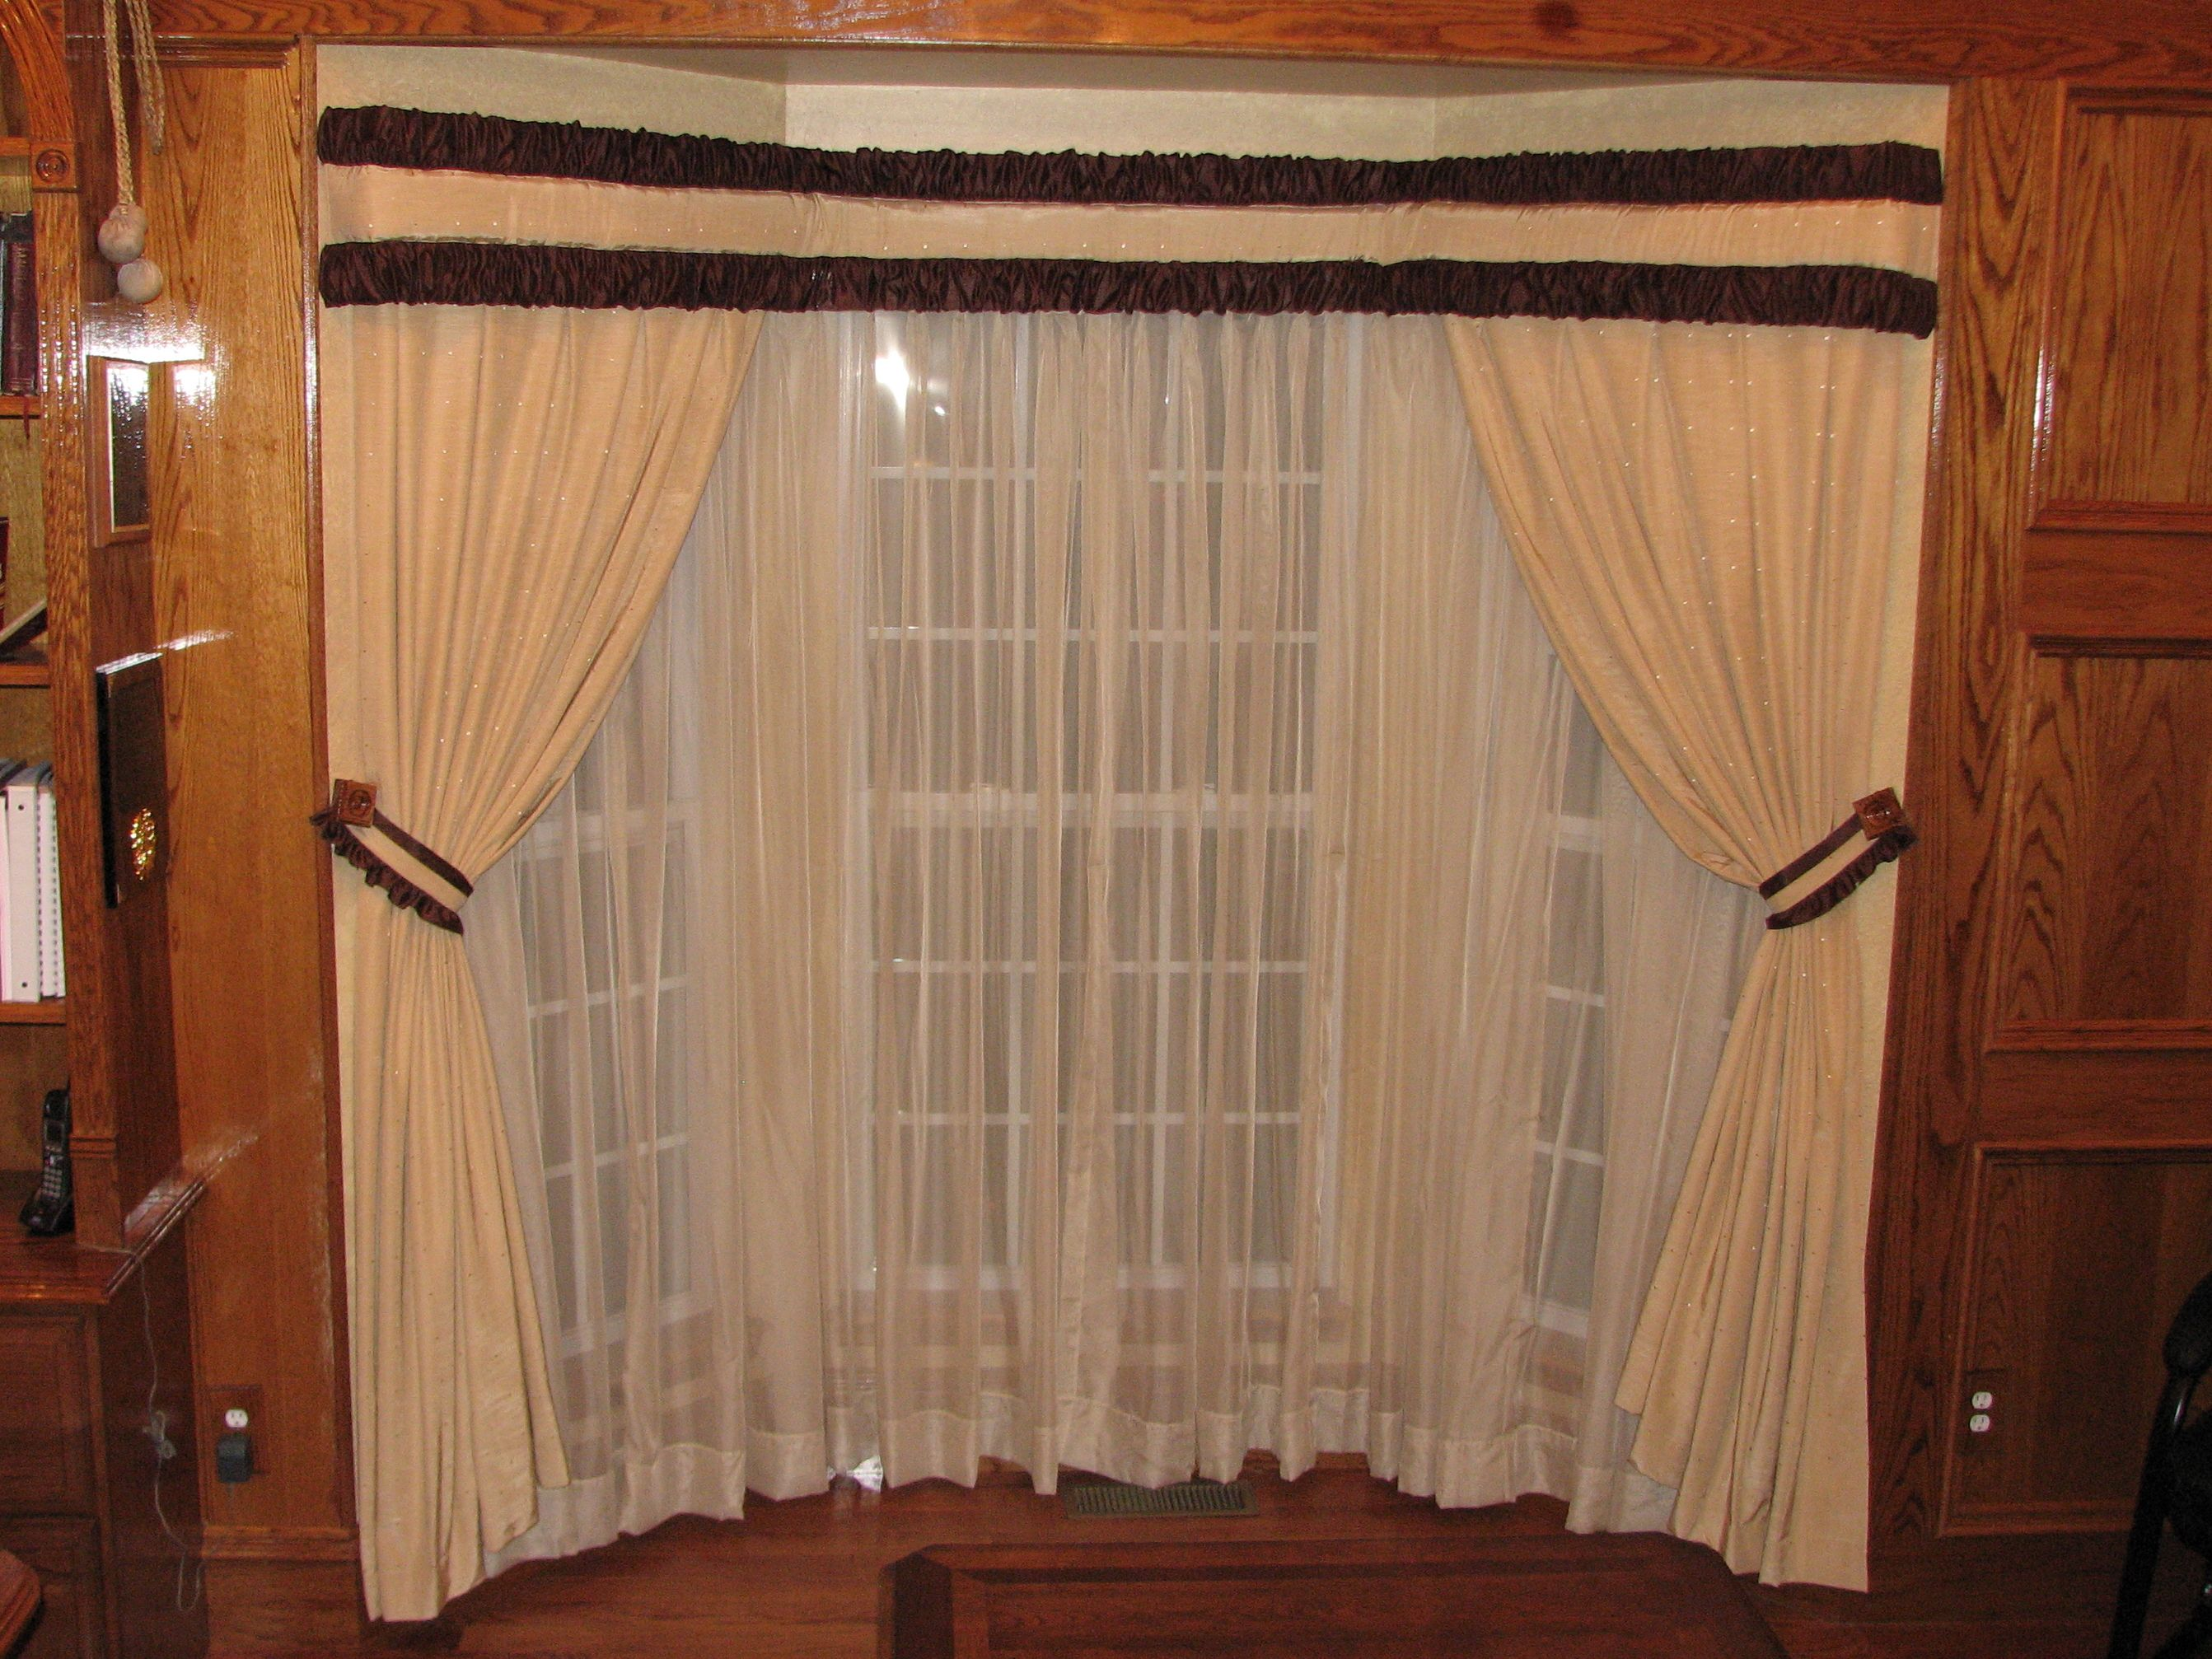 bay window drapes coordinated with sheers on a traverse rod